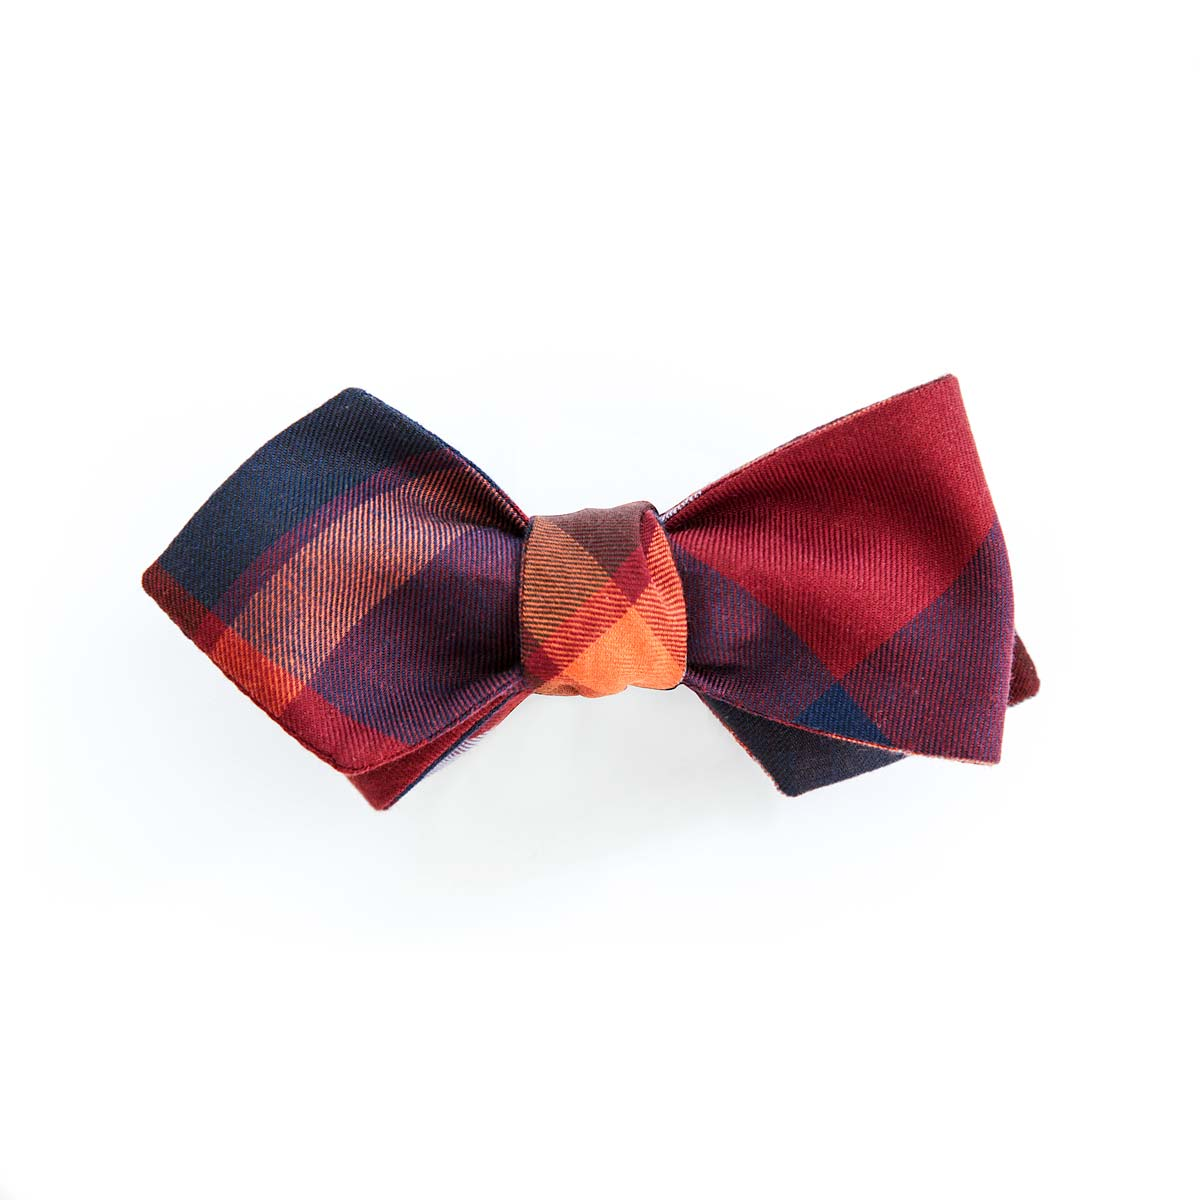 The Cammer Bowtie